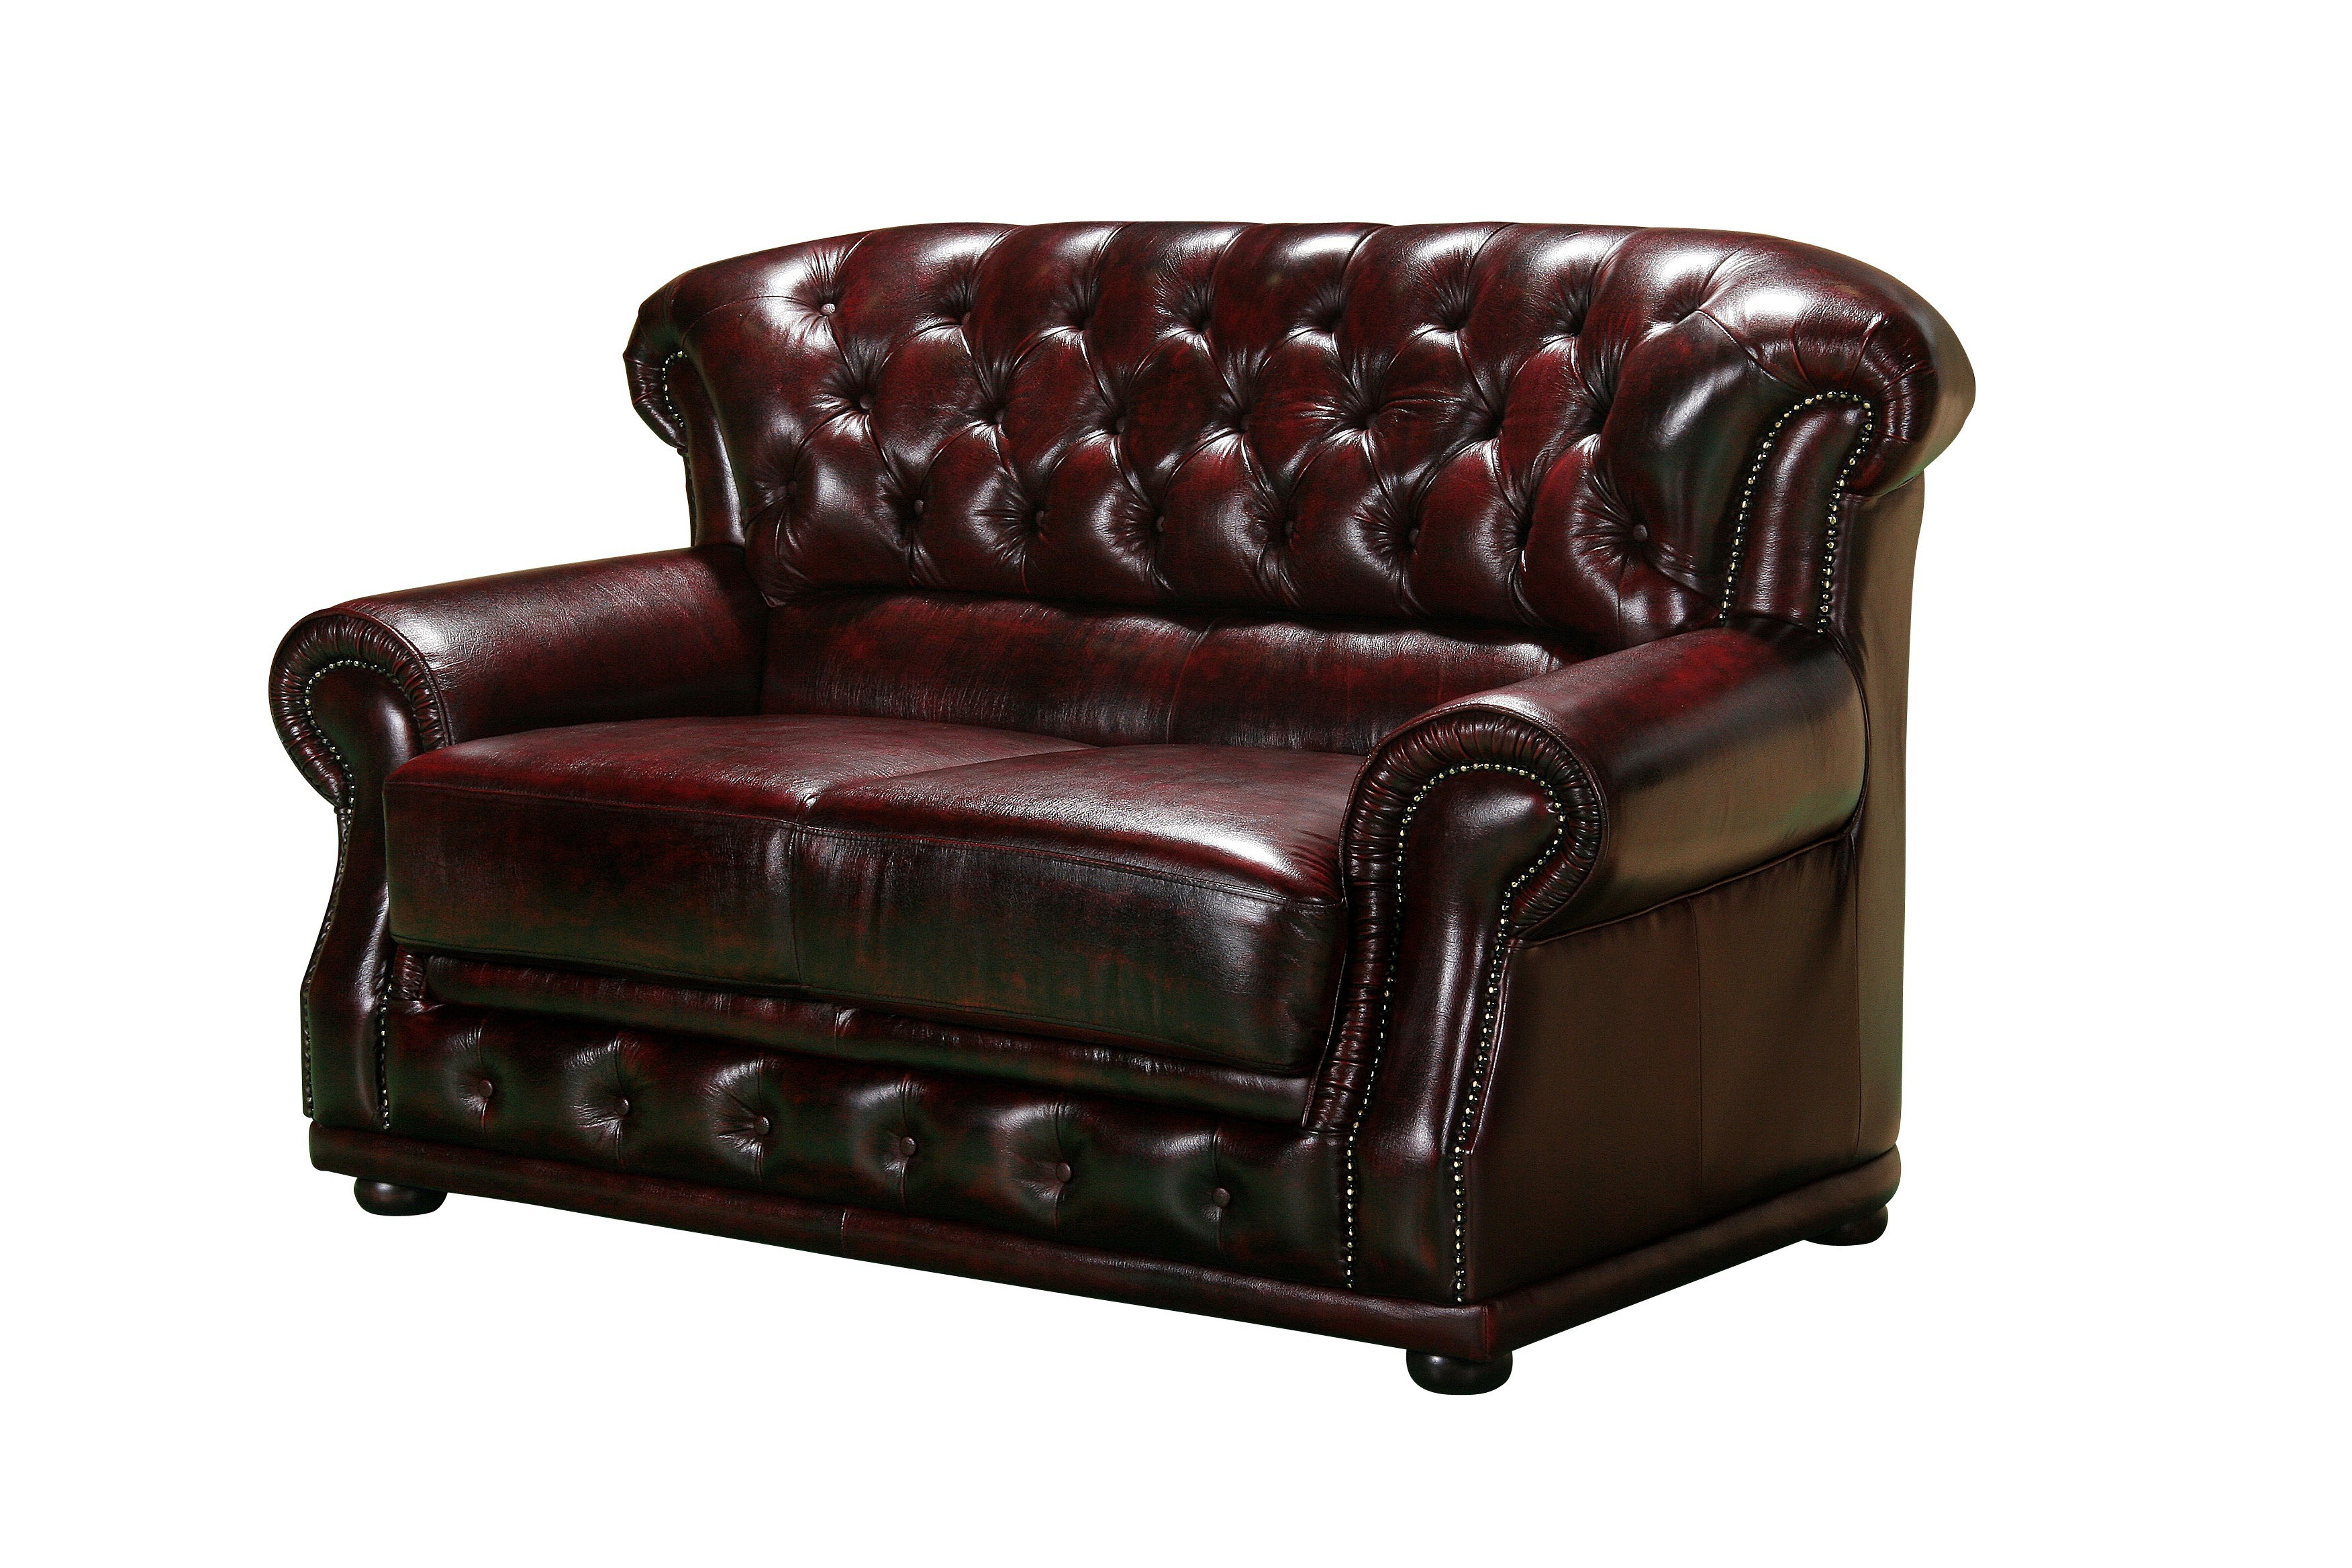 Carolina Classic High Back Chesterfield Lounge